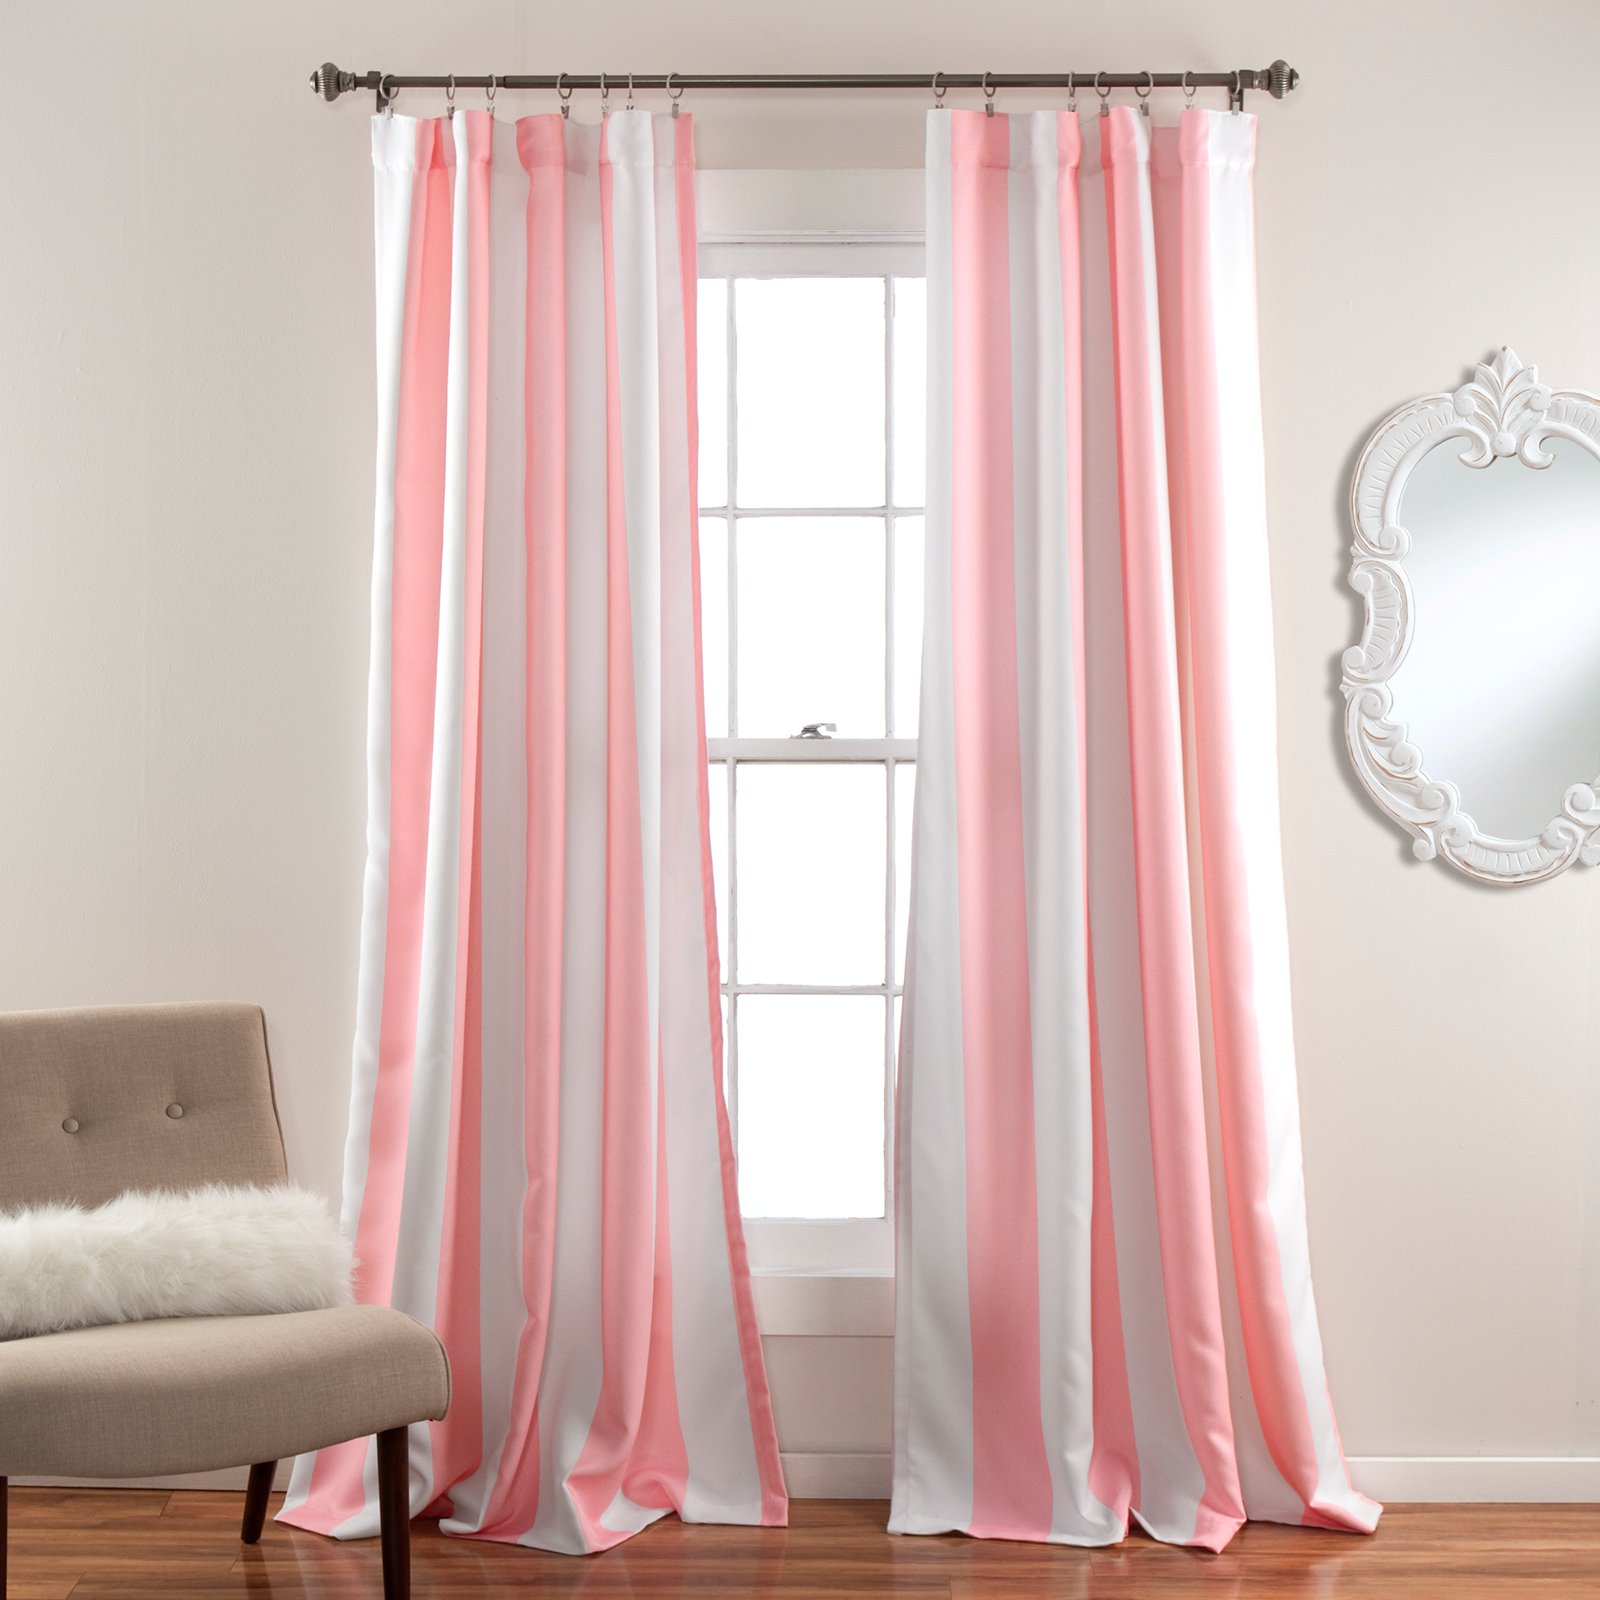 grom default grommet grey striped curtains silk window faux blackout curtain top l dupioni iv bo